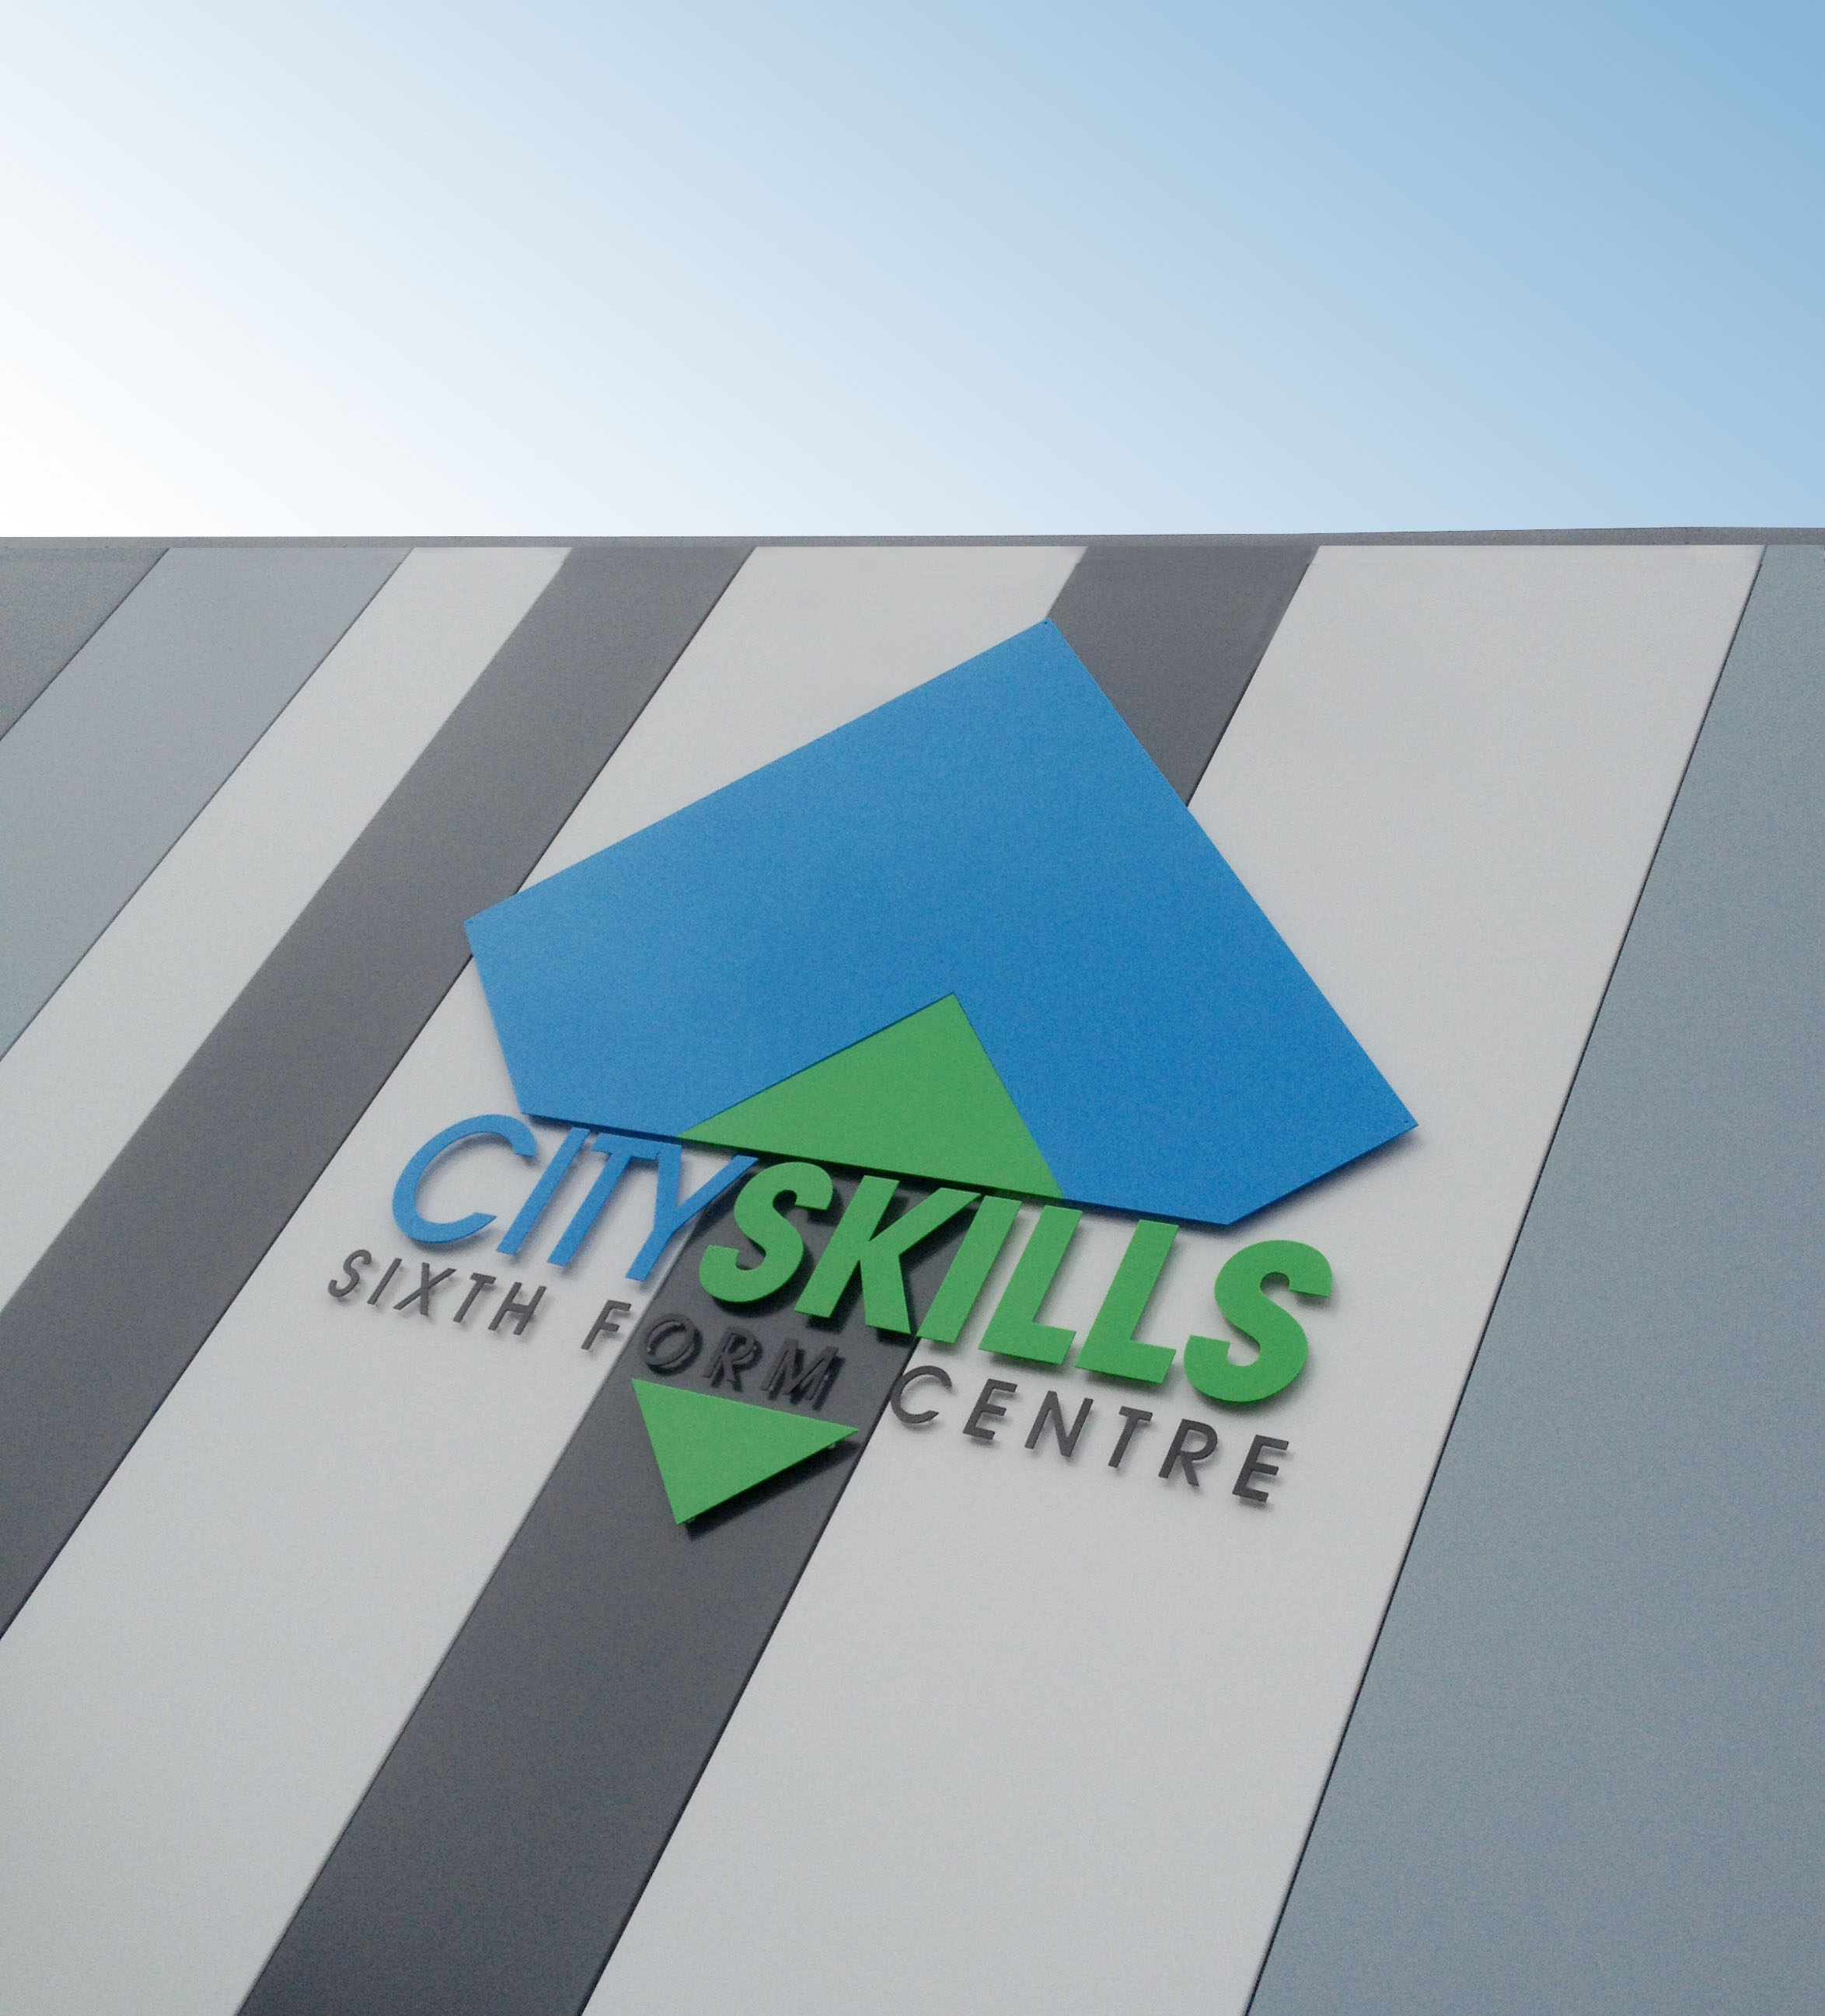 City Skills Sixth Form Centre